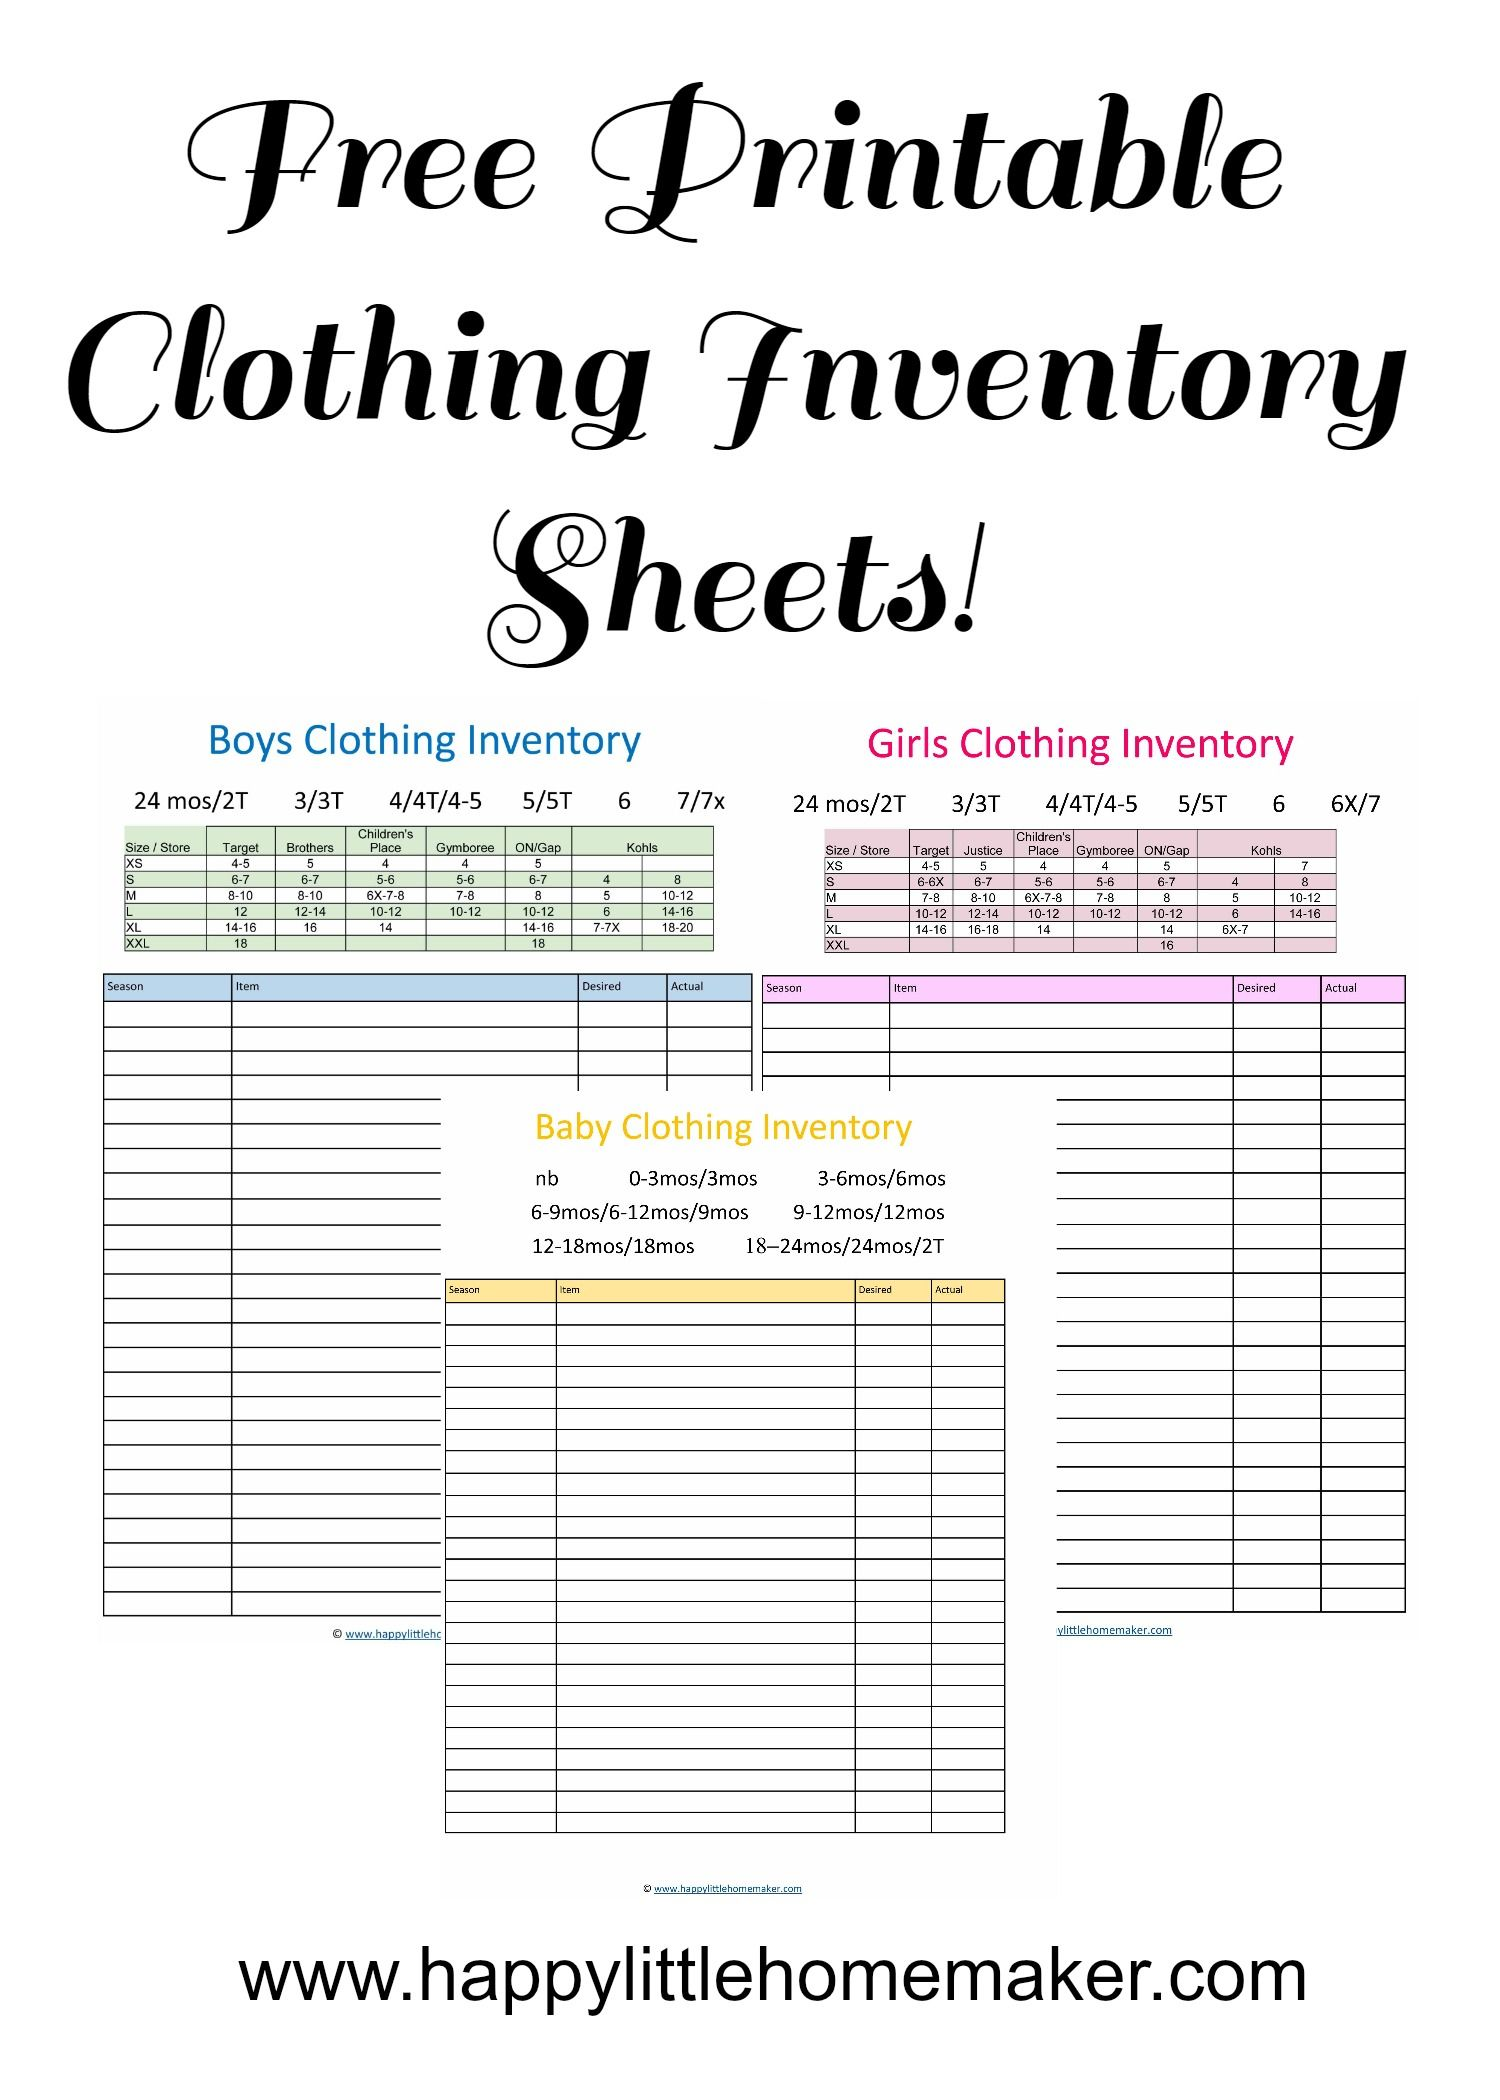 graphic about Inventory Sheets Printable known as cost-free printable outfits stock sheets 2017 Printable